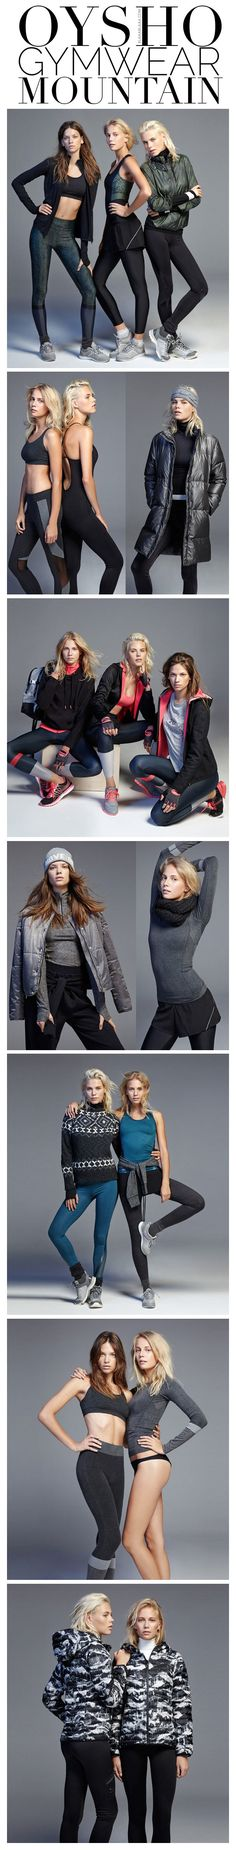 OYSHO Gymwear Mountain | The House of Beccaria~